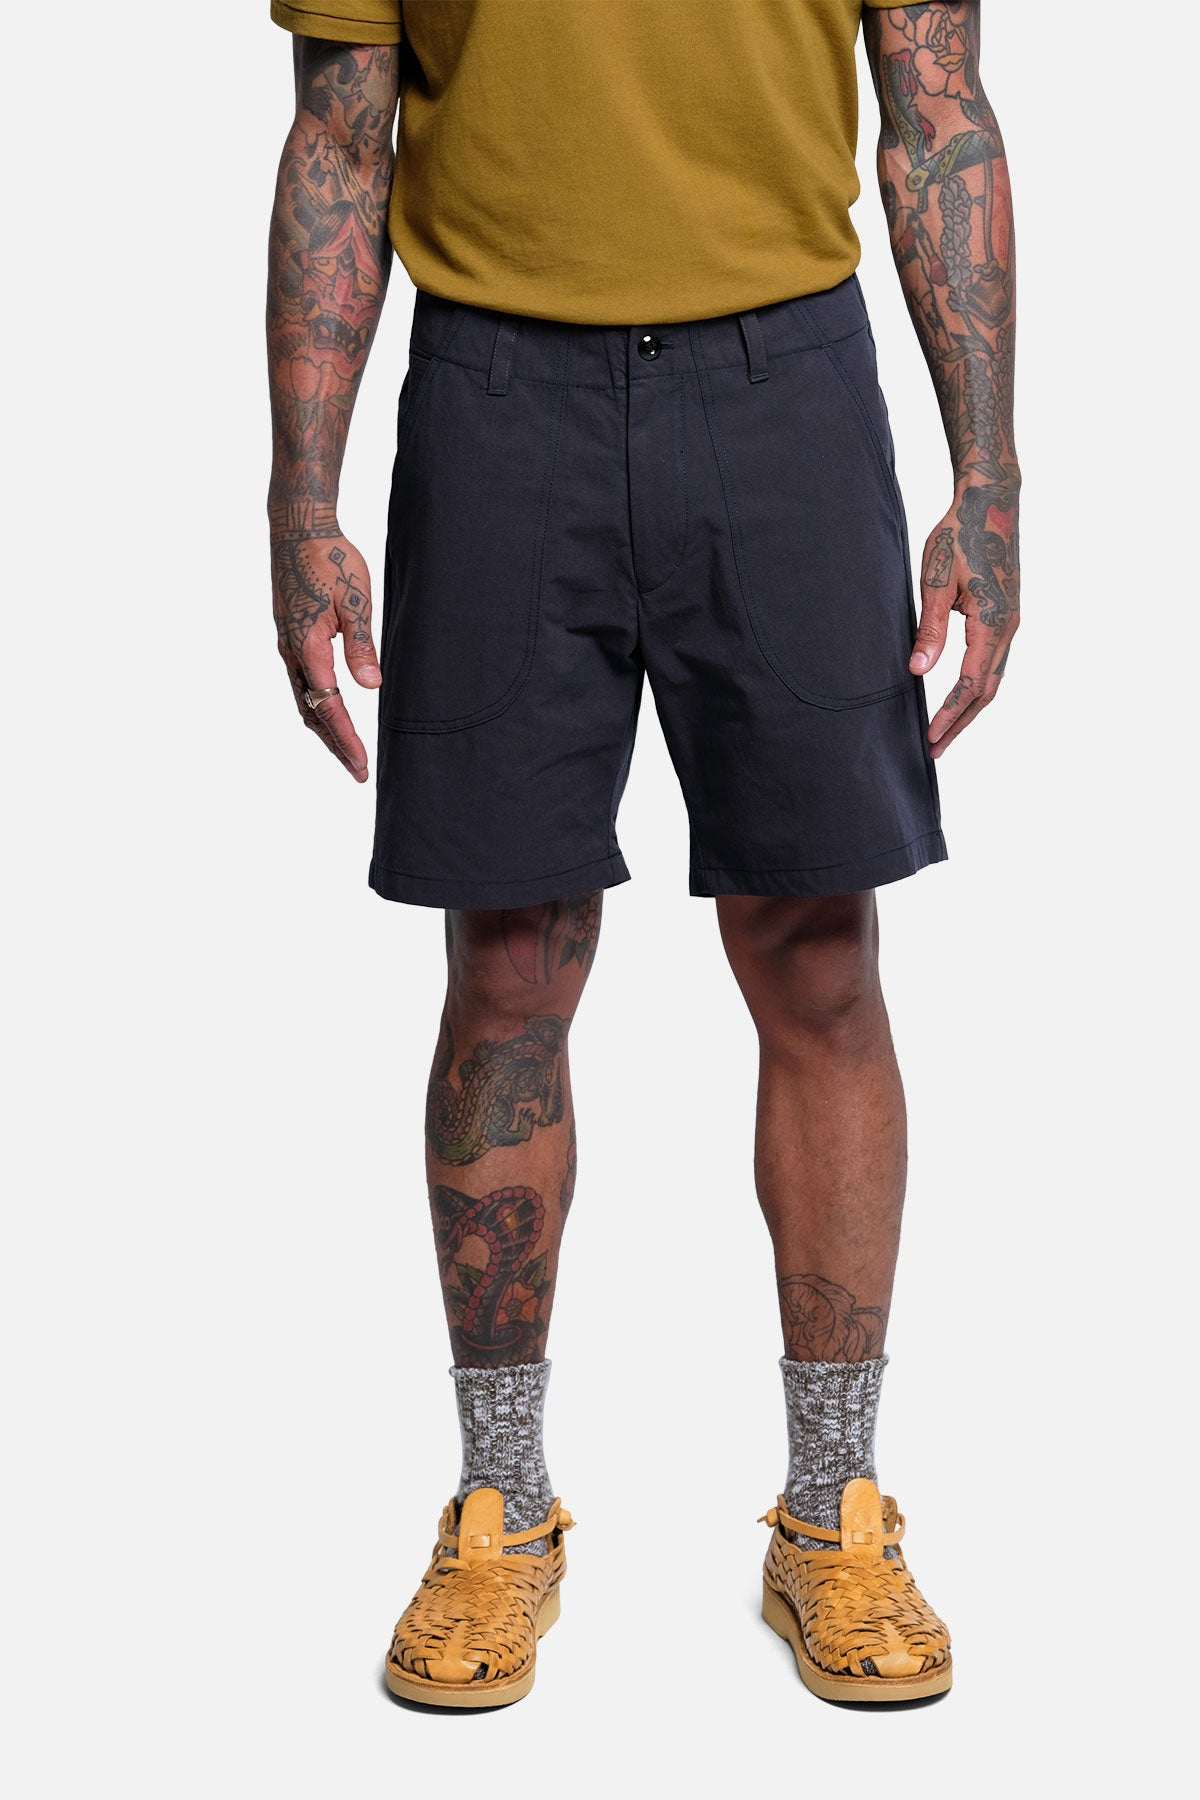 OG SHORT IN NAVY RIPSTOP - Fortune Goods